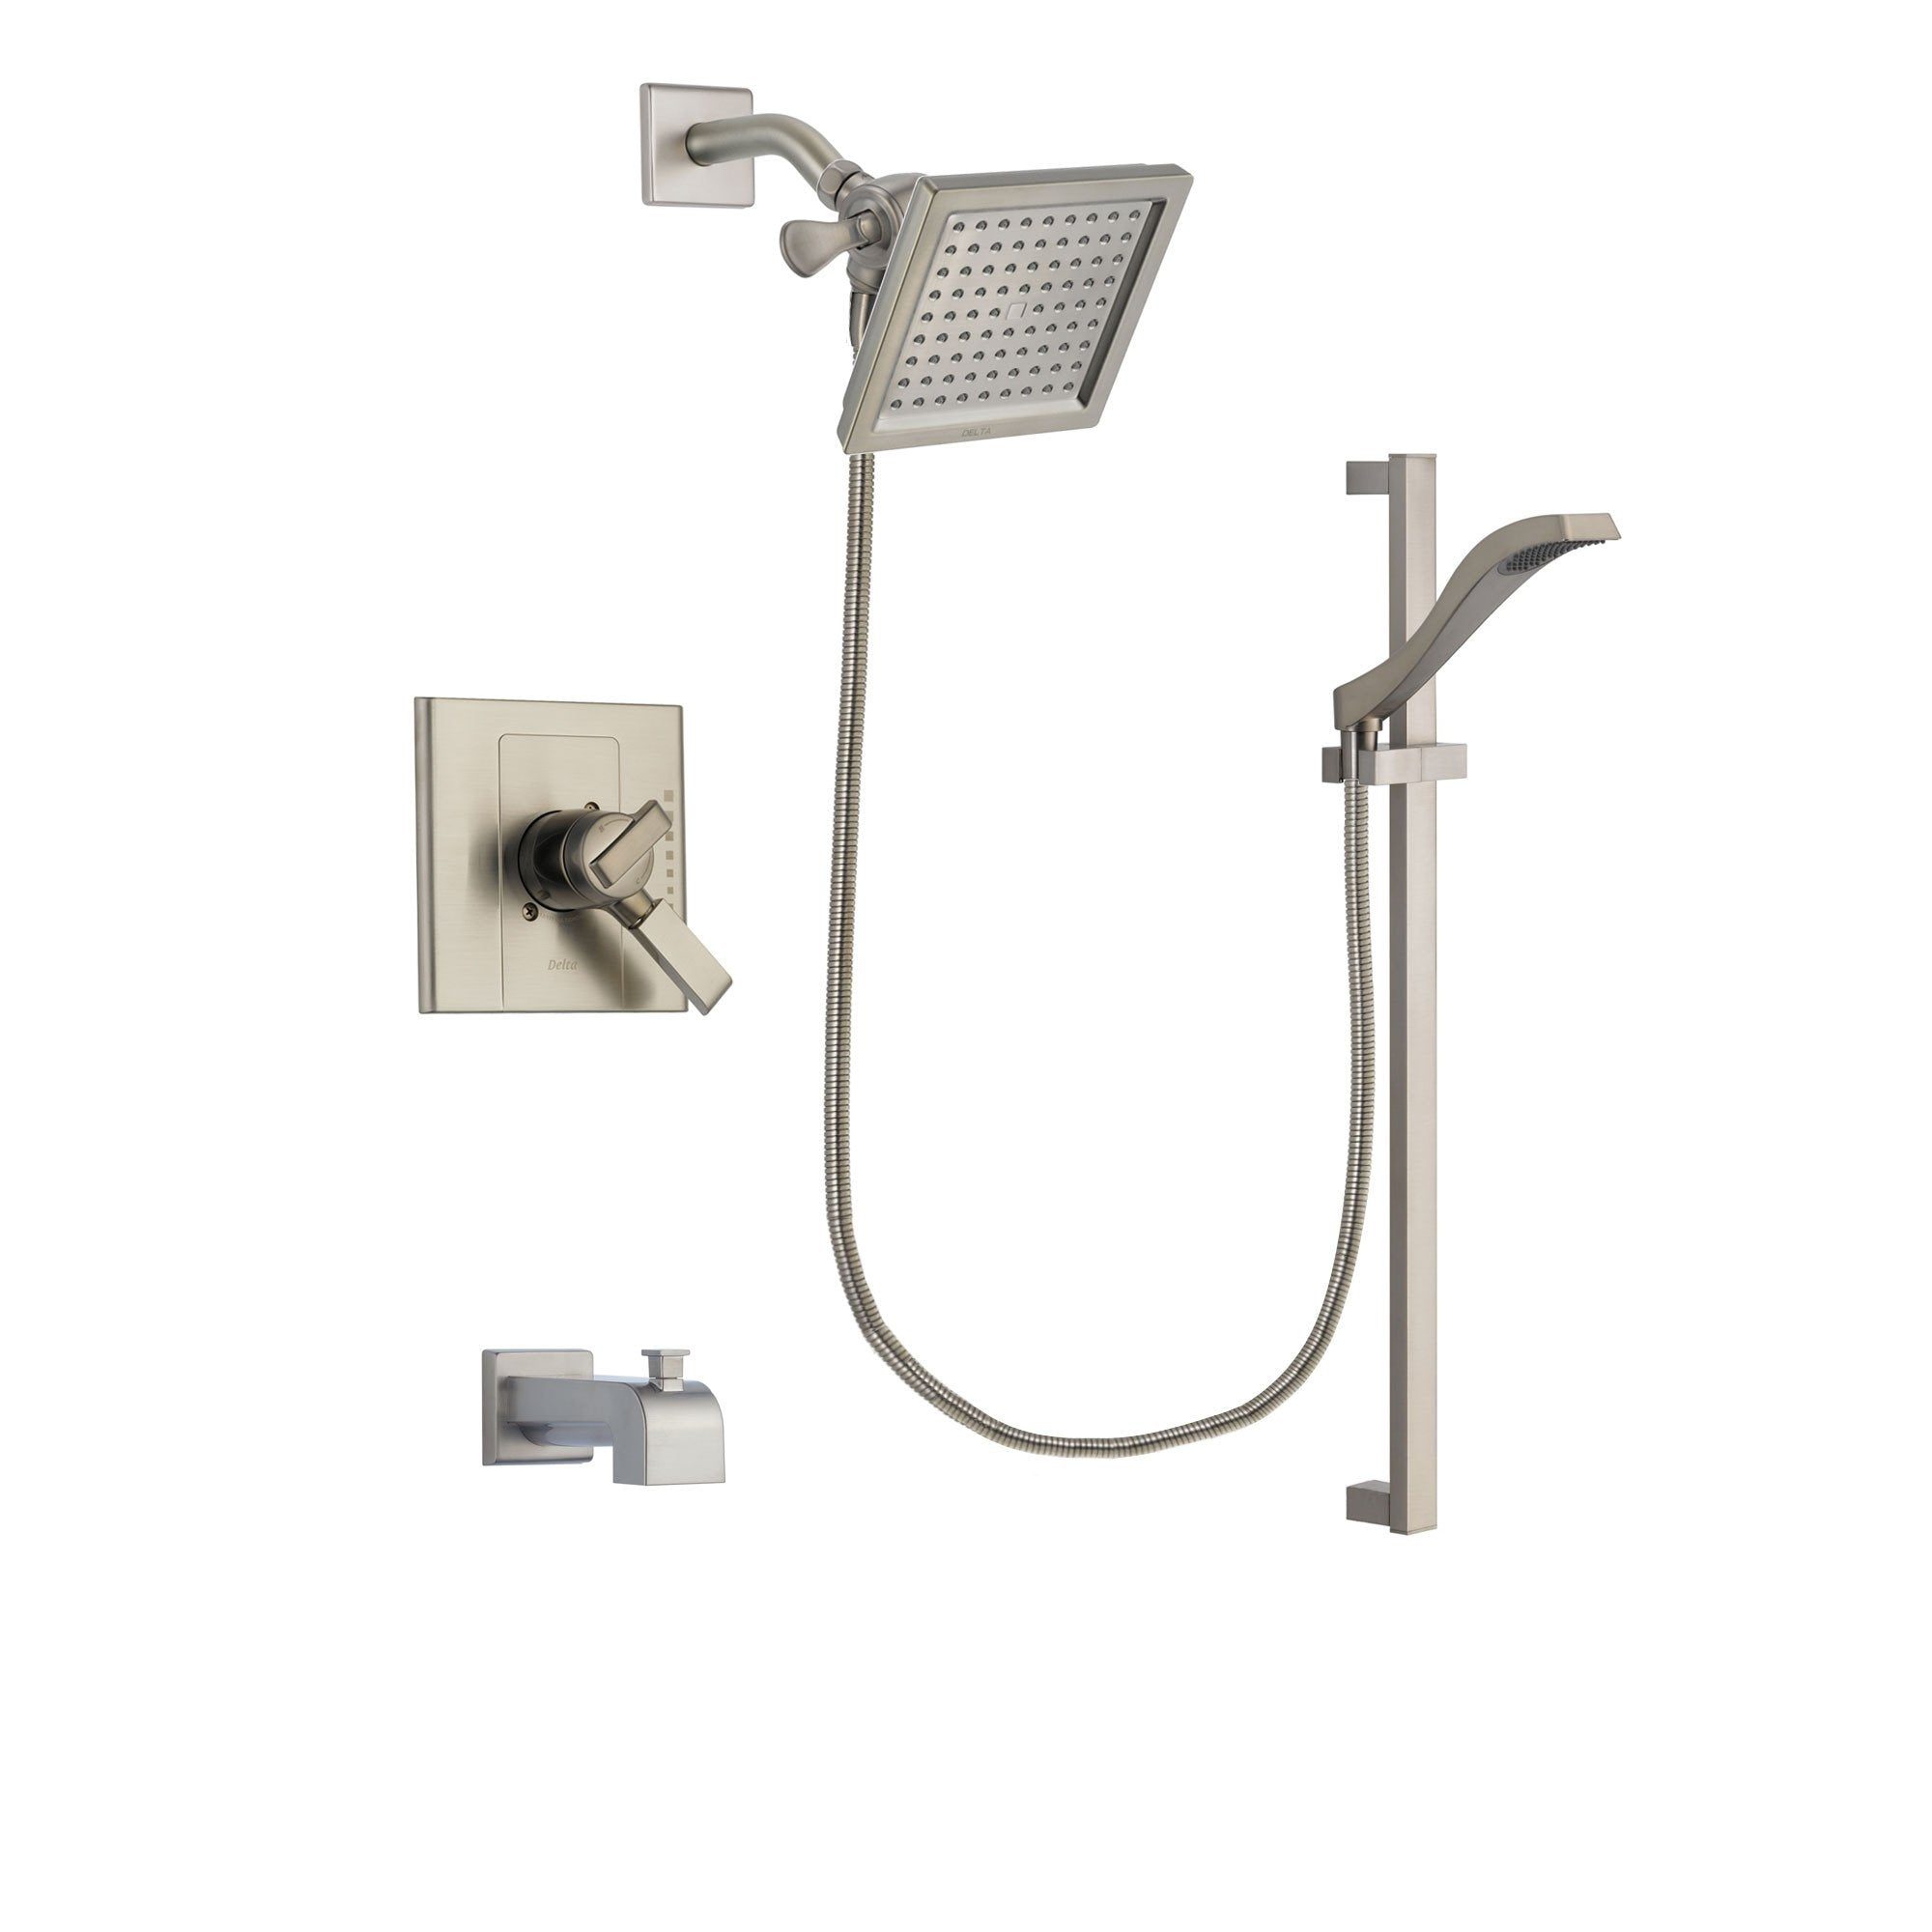 Delta Arzo Stainless Steel Finish Dual Control Tub And Shower Faucet System Package With 6 5 Inch Square Rain Showerhead And Handheld Shower With